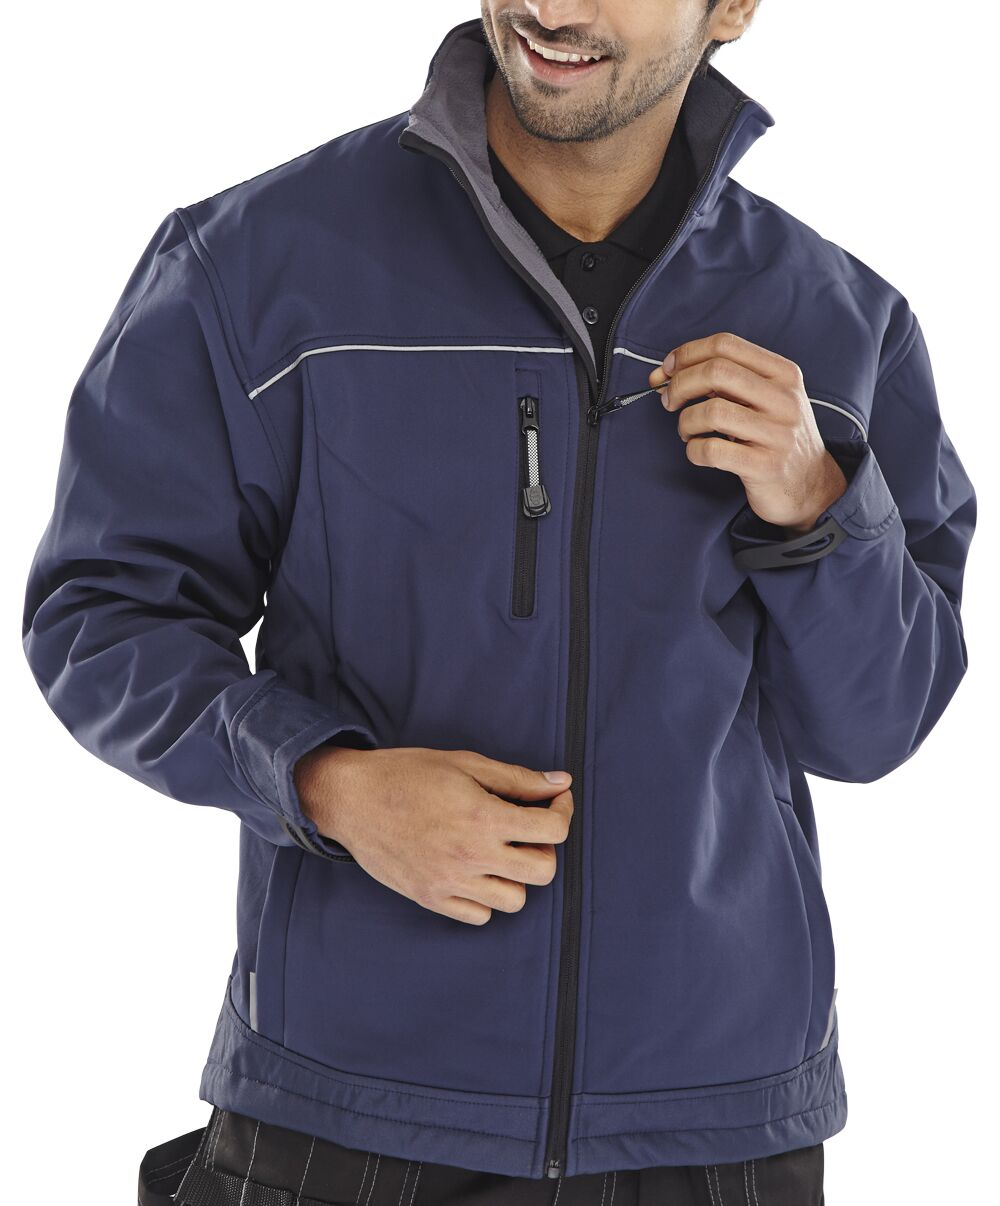 Body Protection Click Workwear Soft Shell Jacket Water Resistant Windproof 4XL Navy Ref SSJN4XL *Approx 3 Day Leadtime*